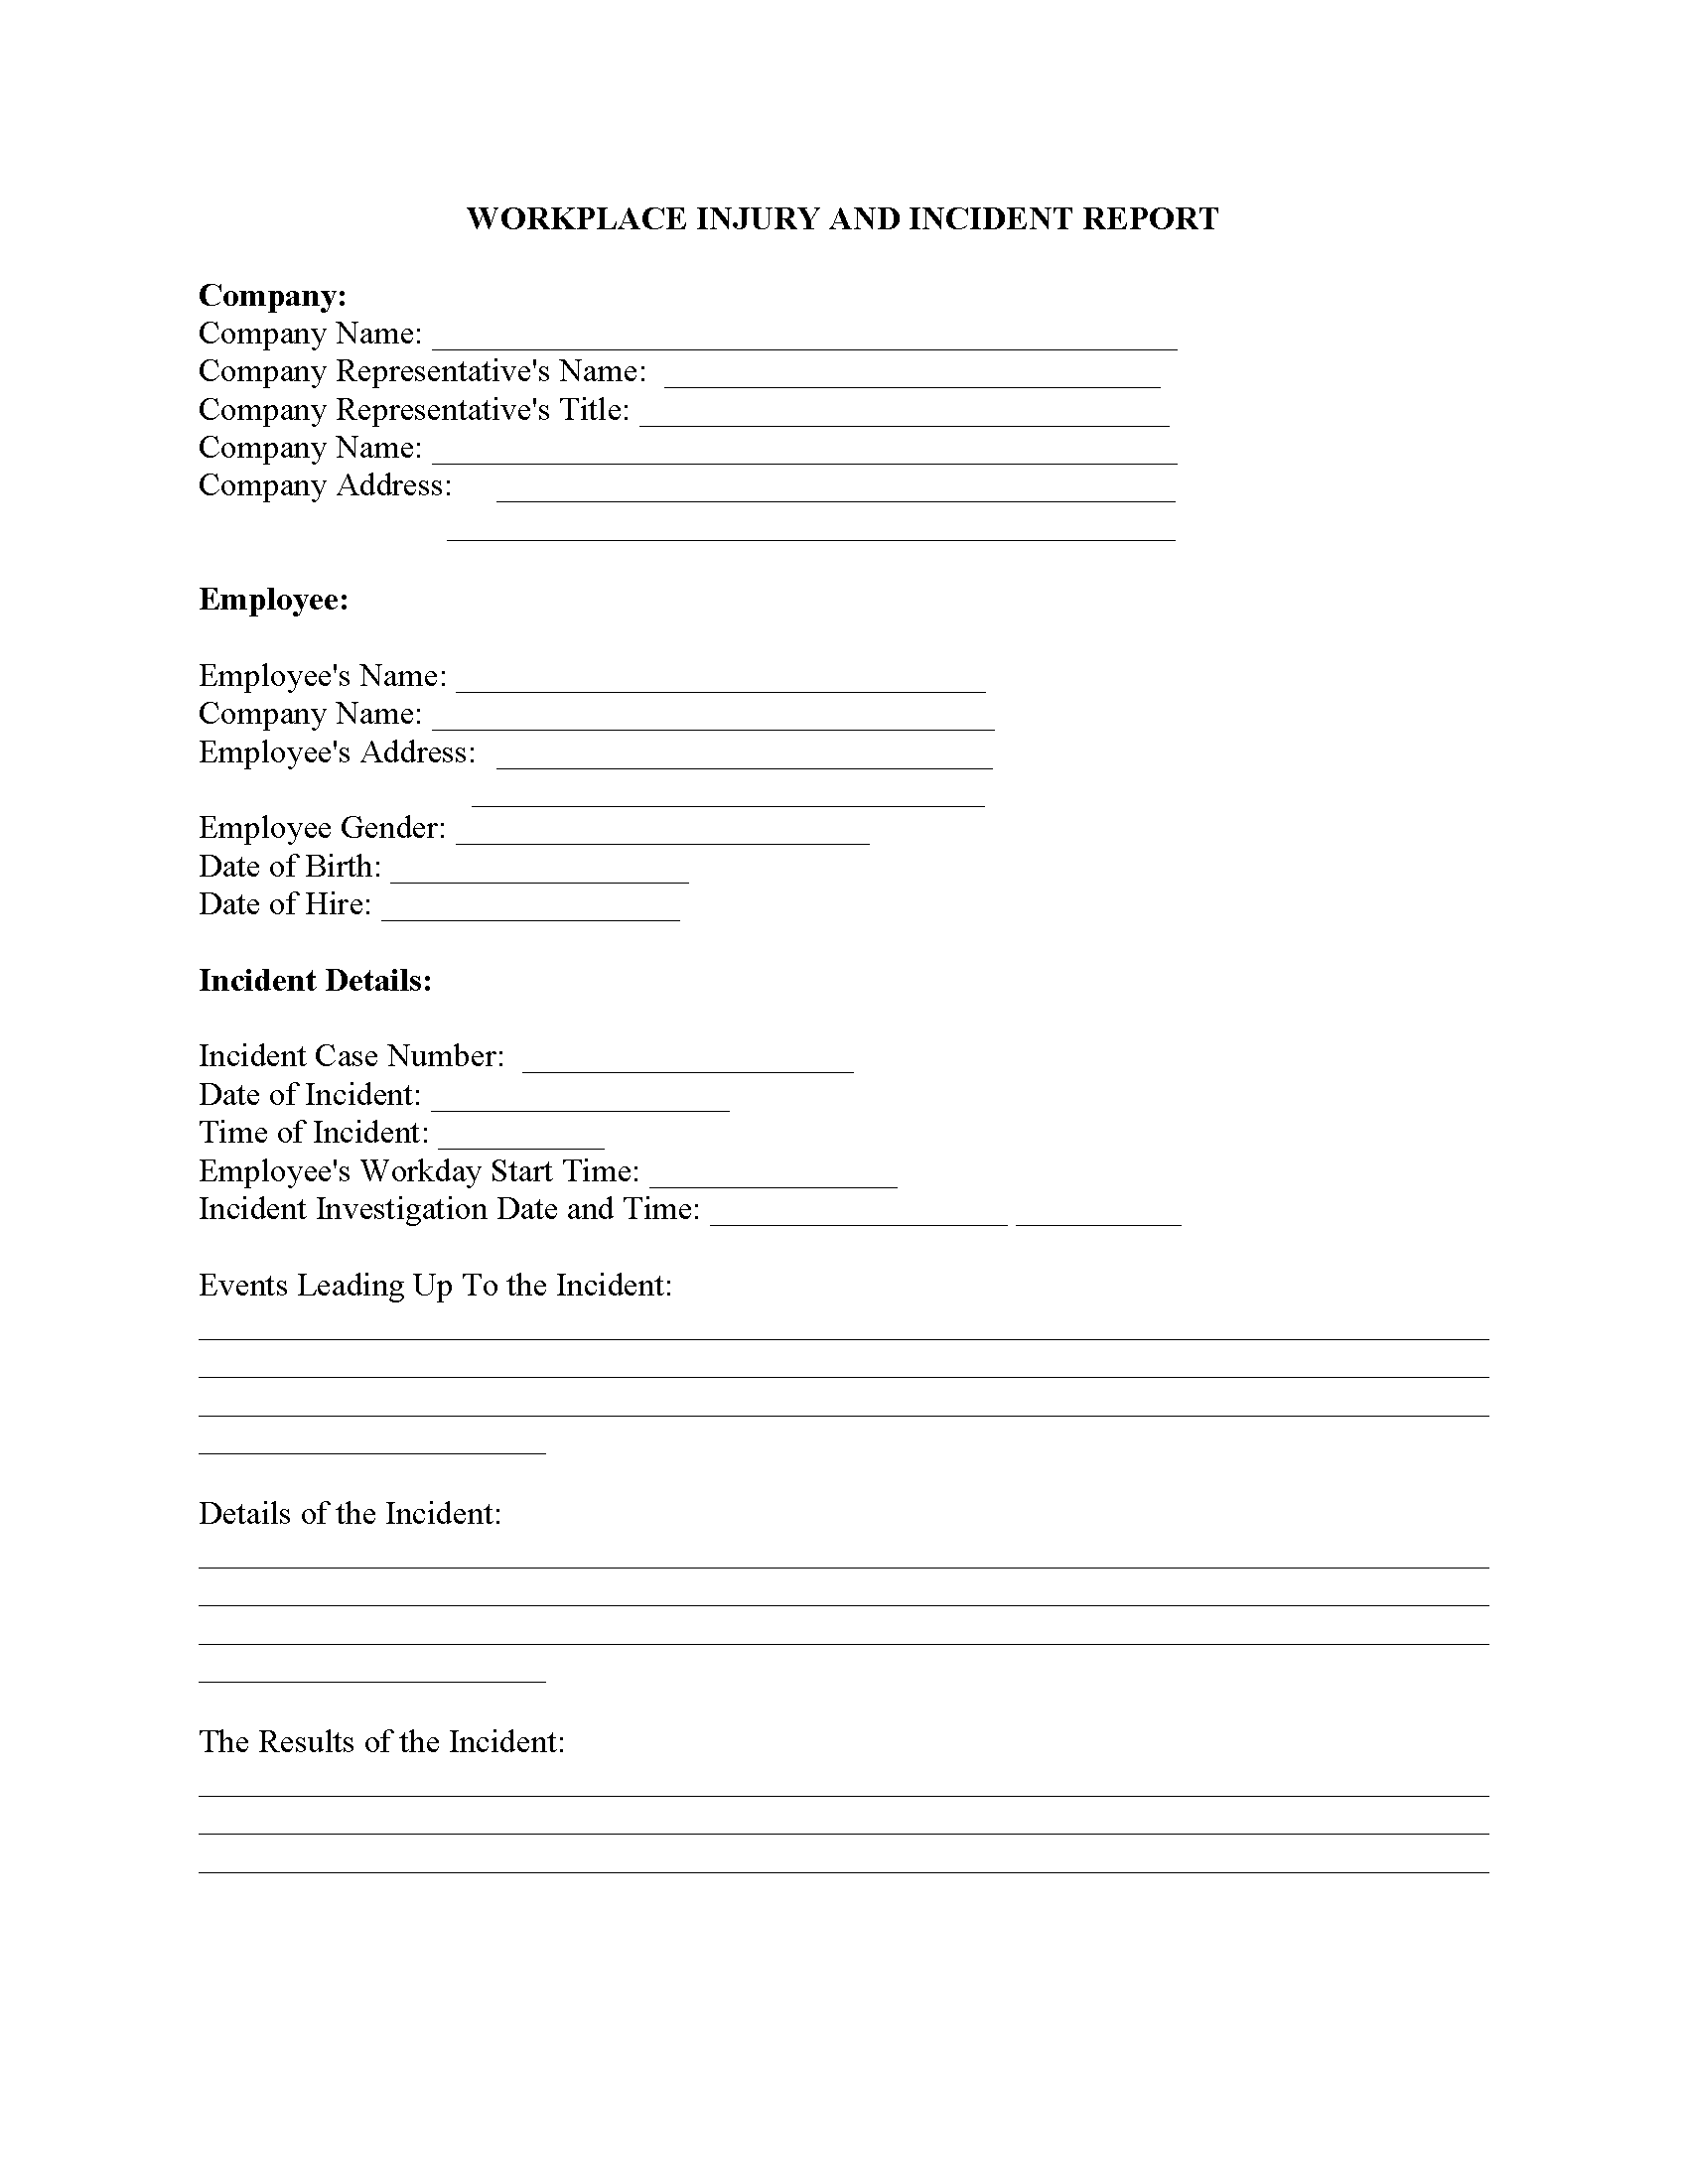 Work Injury Report Fillable PDF Form